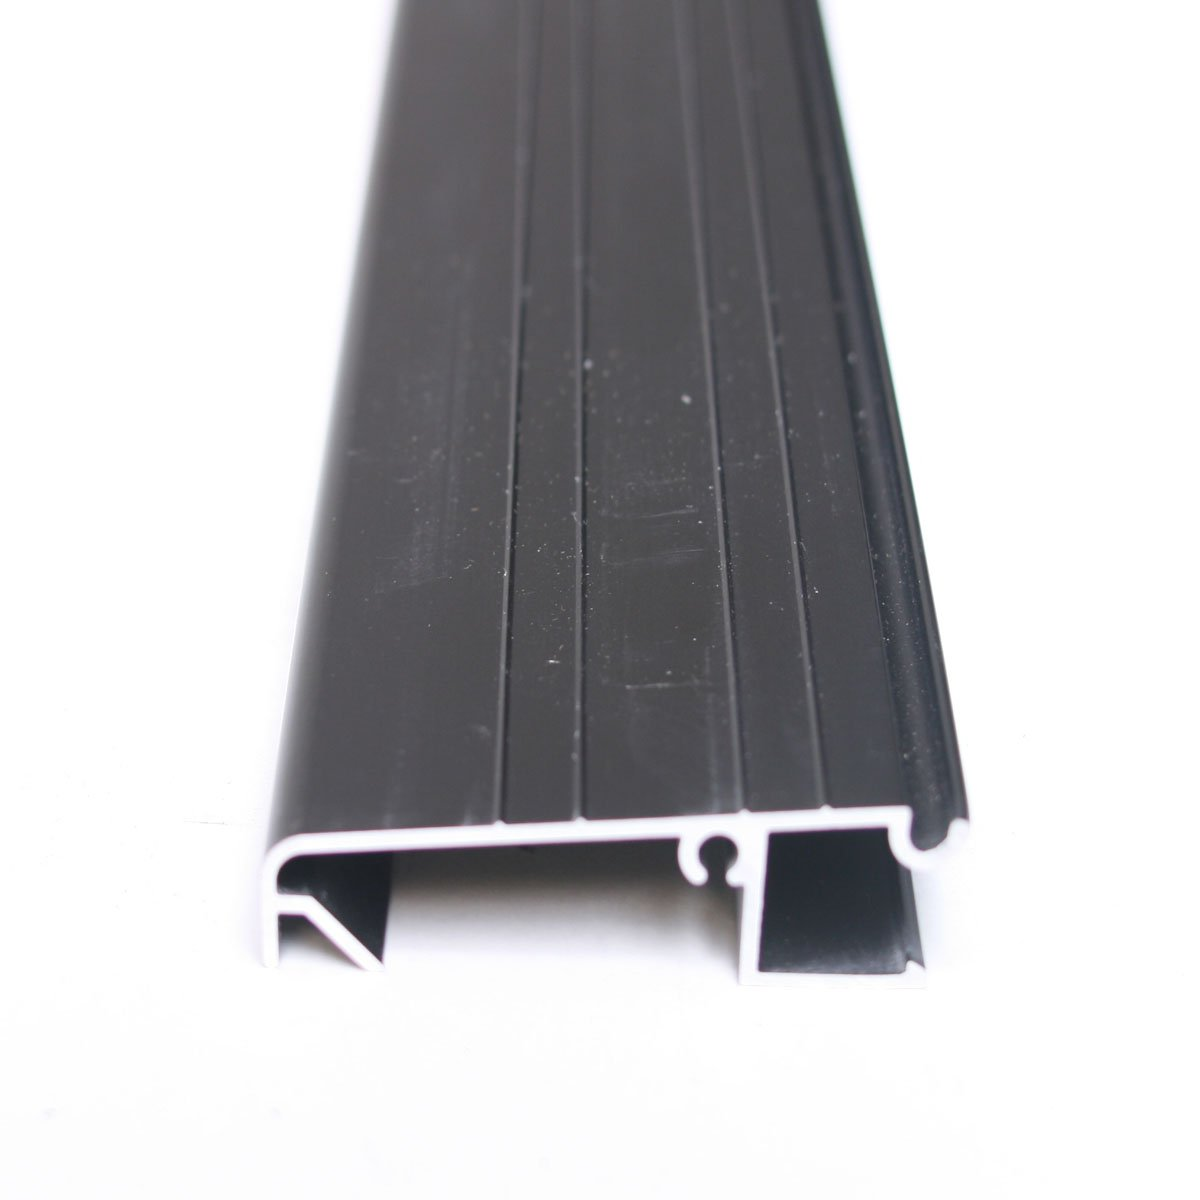 M-D Building Products 67110 TH200 2-Inch by 72-Inch Inswing Extenders